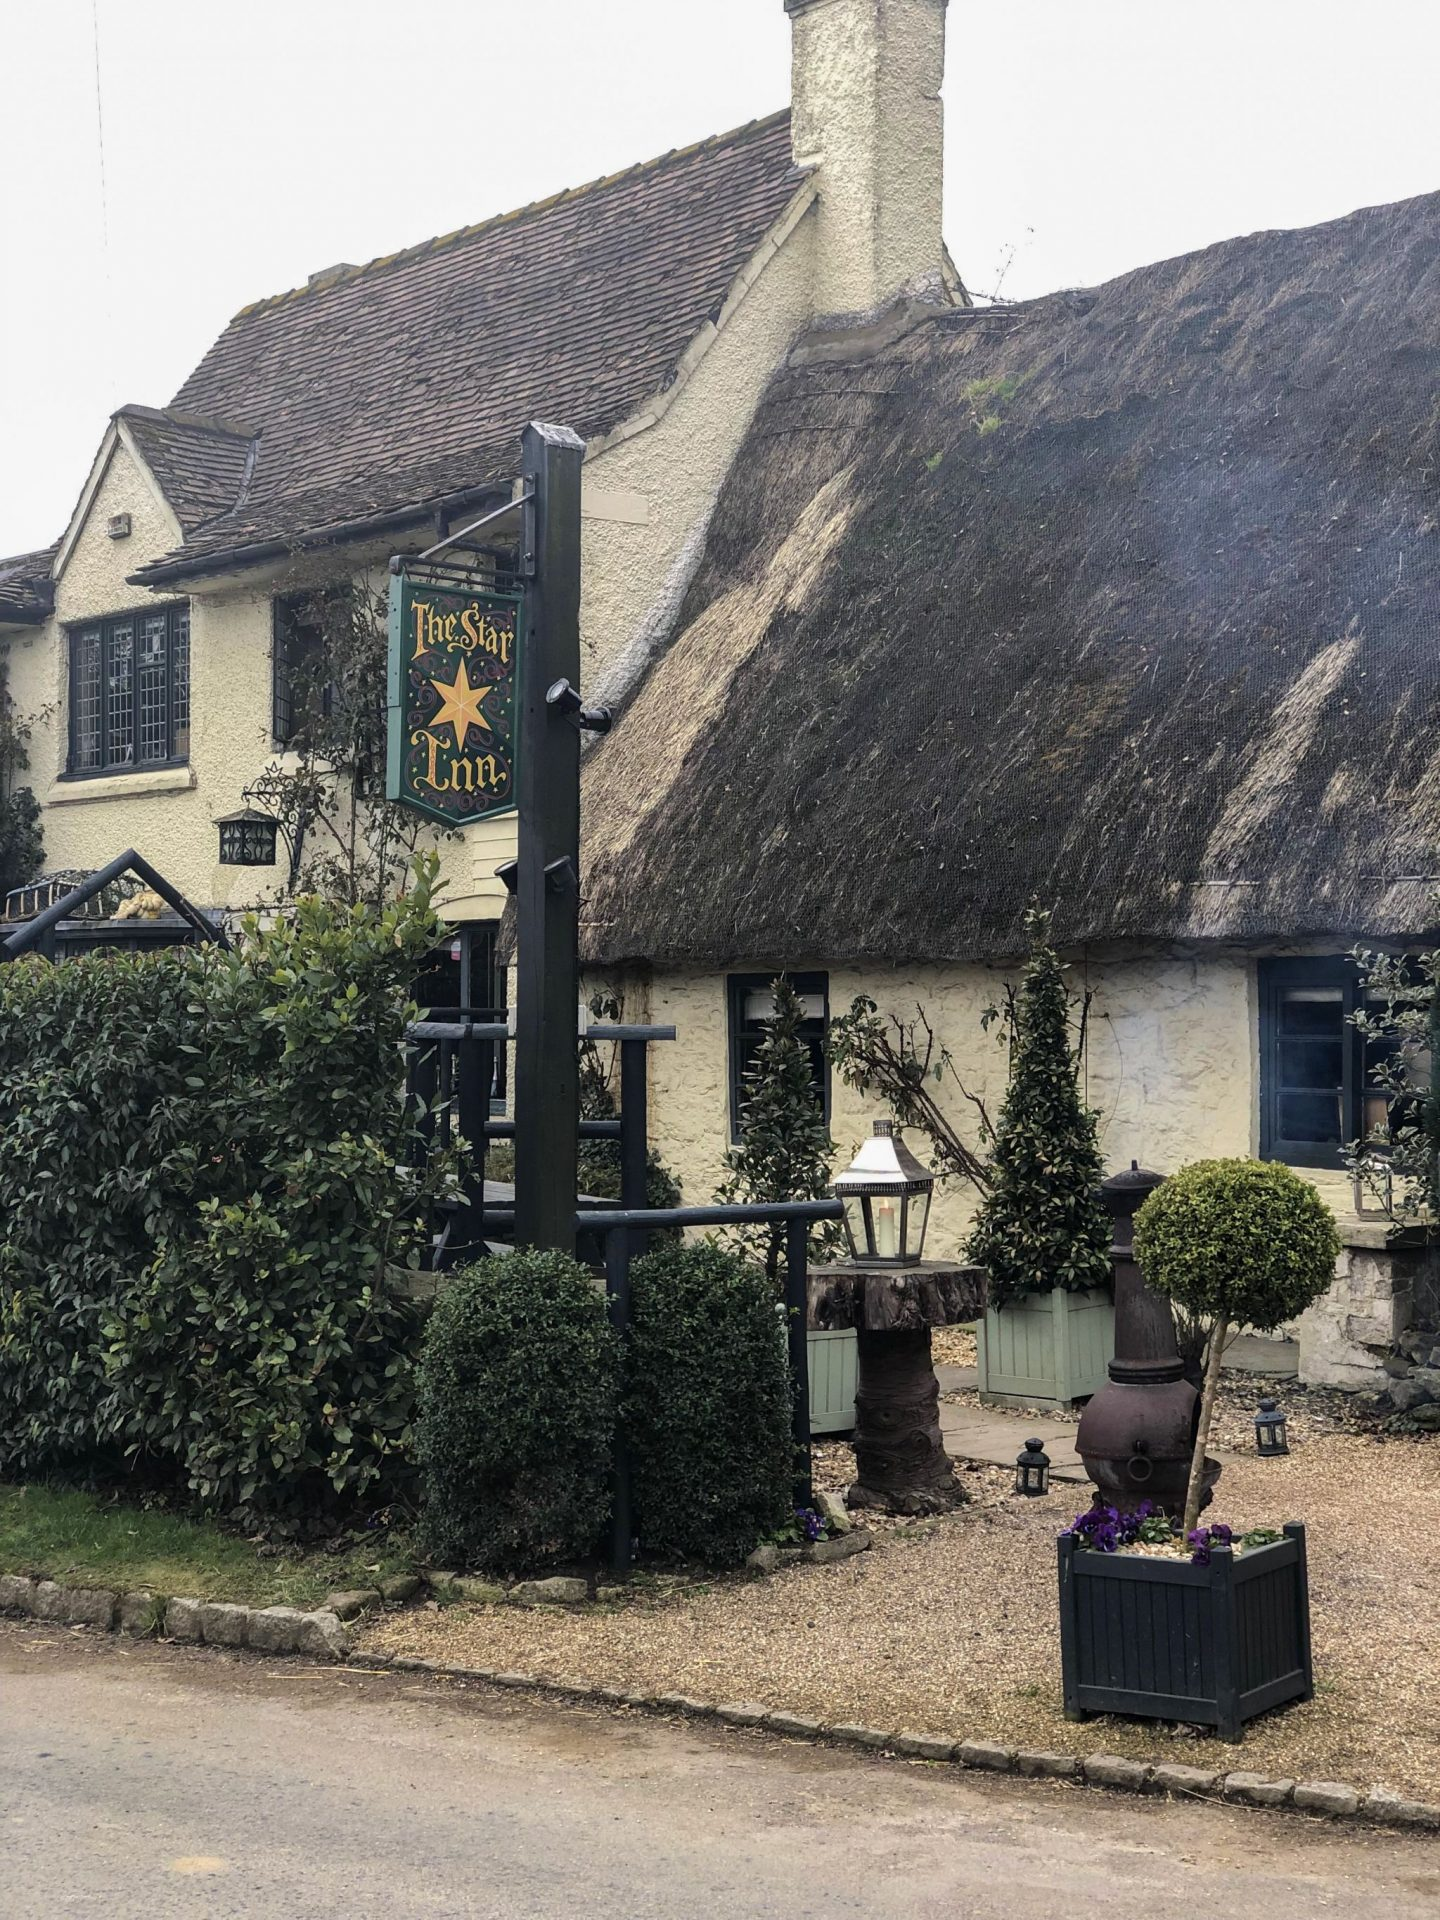 The Star Inn, Harome. Things to do Helmsley.